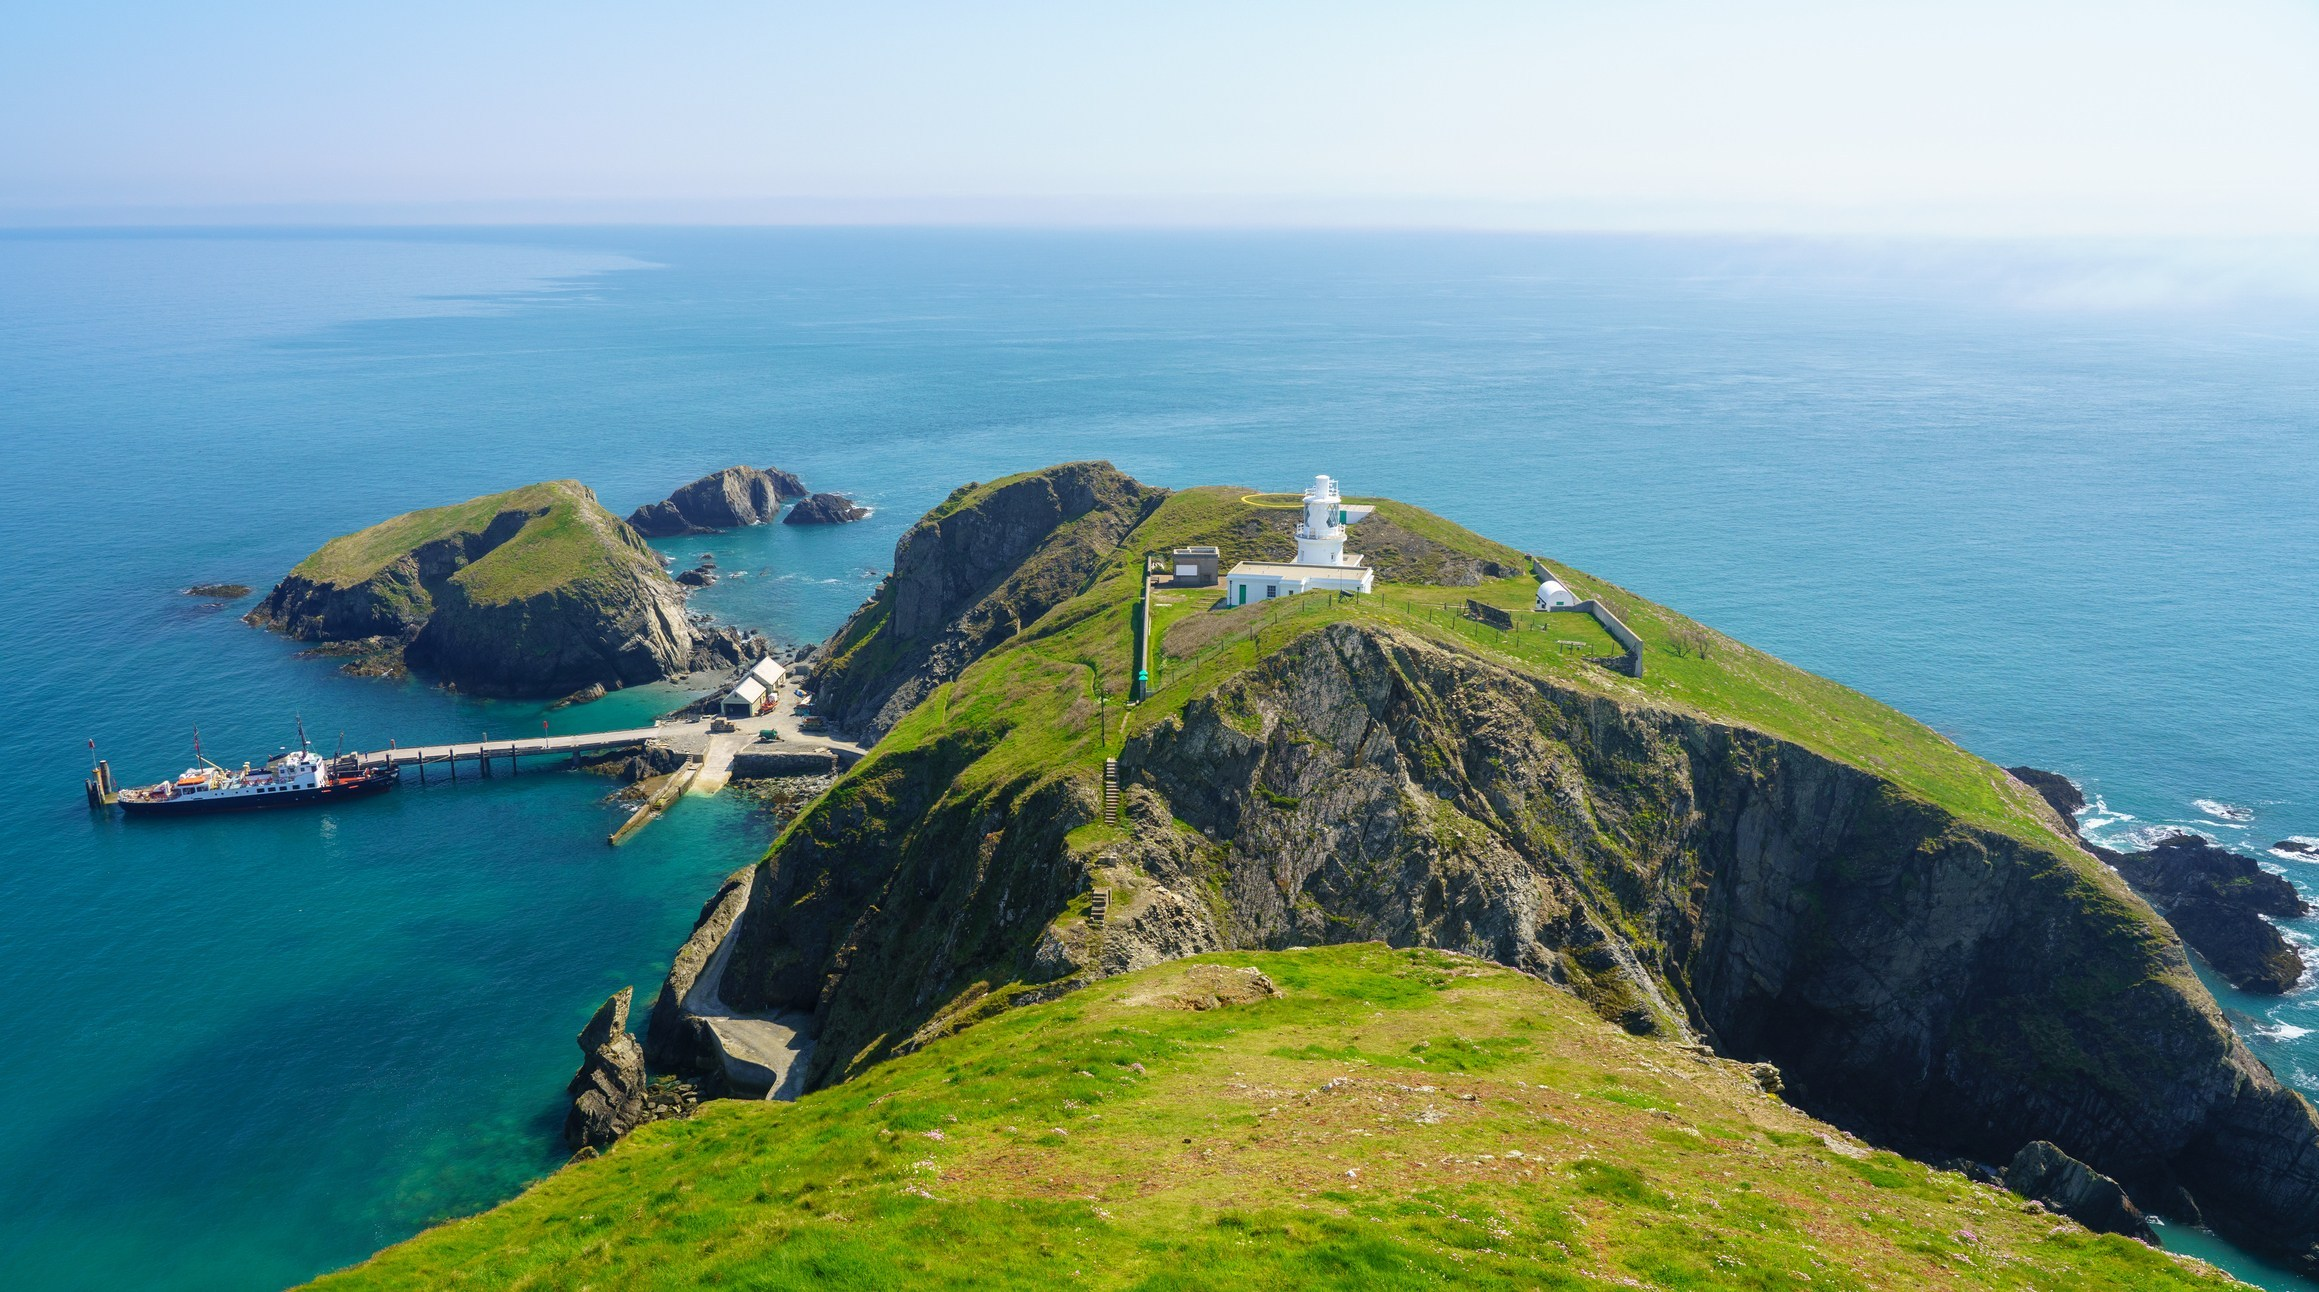 You can now escape tiers and lockdowns by applying for a job on this Covid-free island off the UK coast